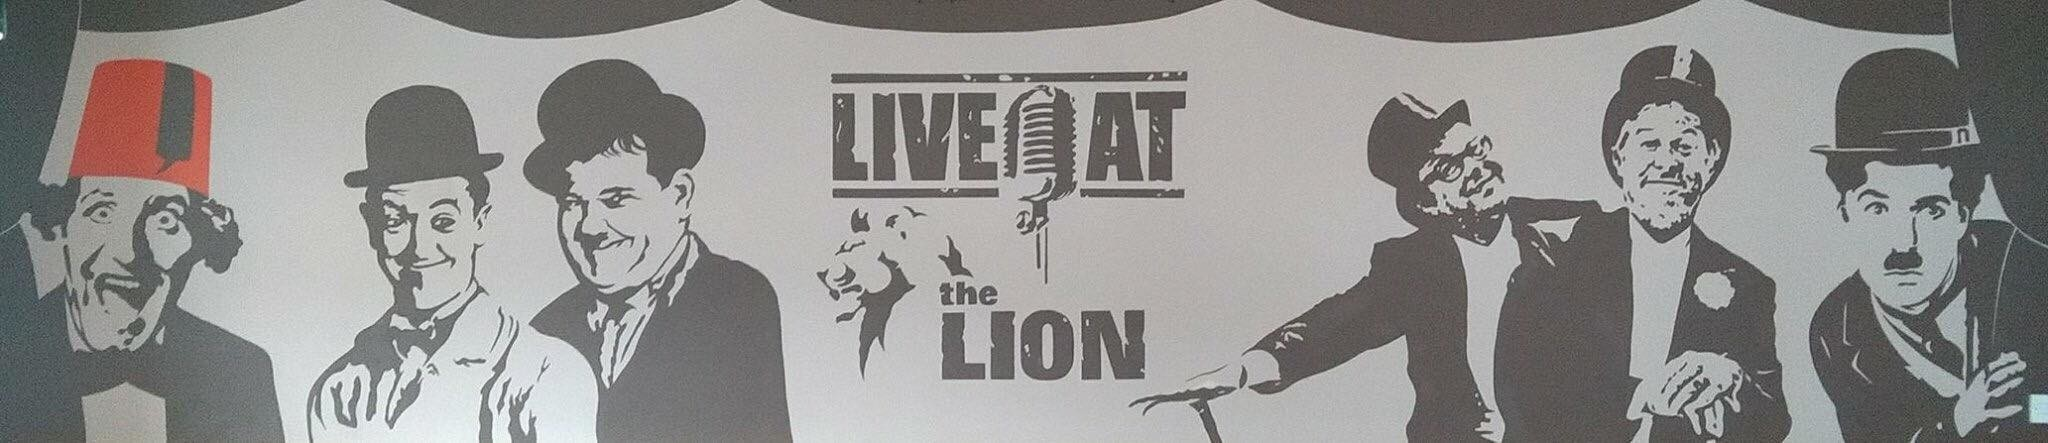 Live at the lion the lions dens comedy club south wales jokepit tickets google